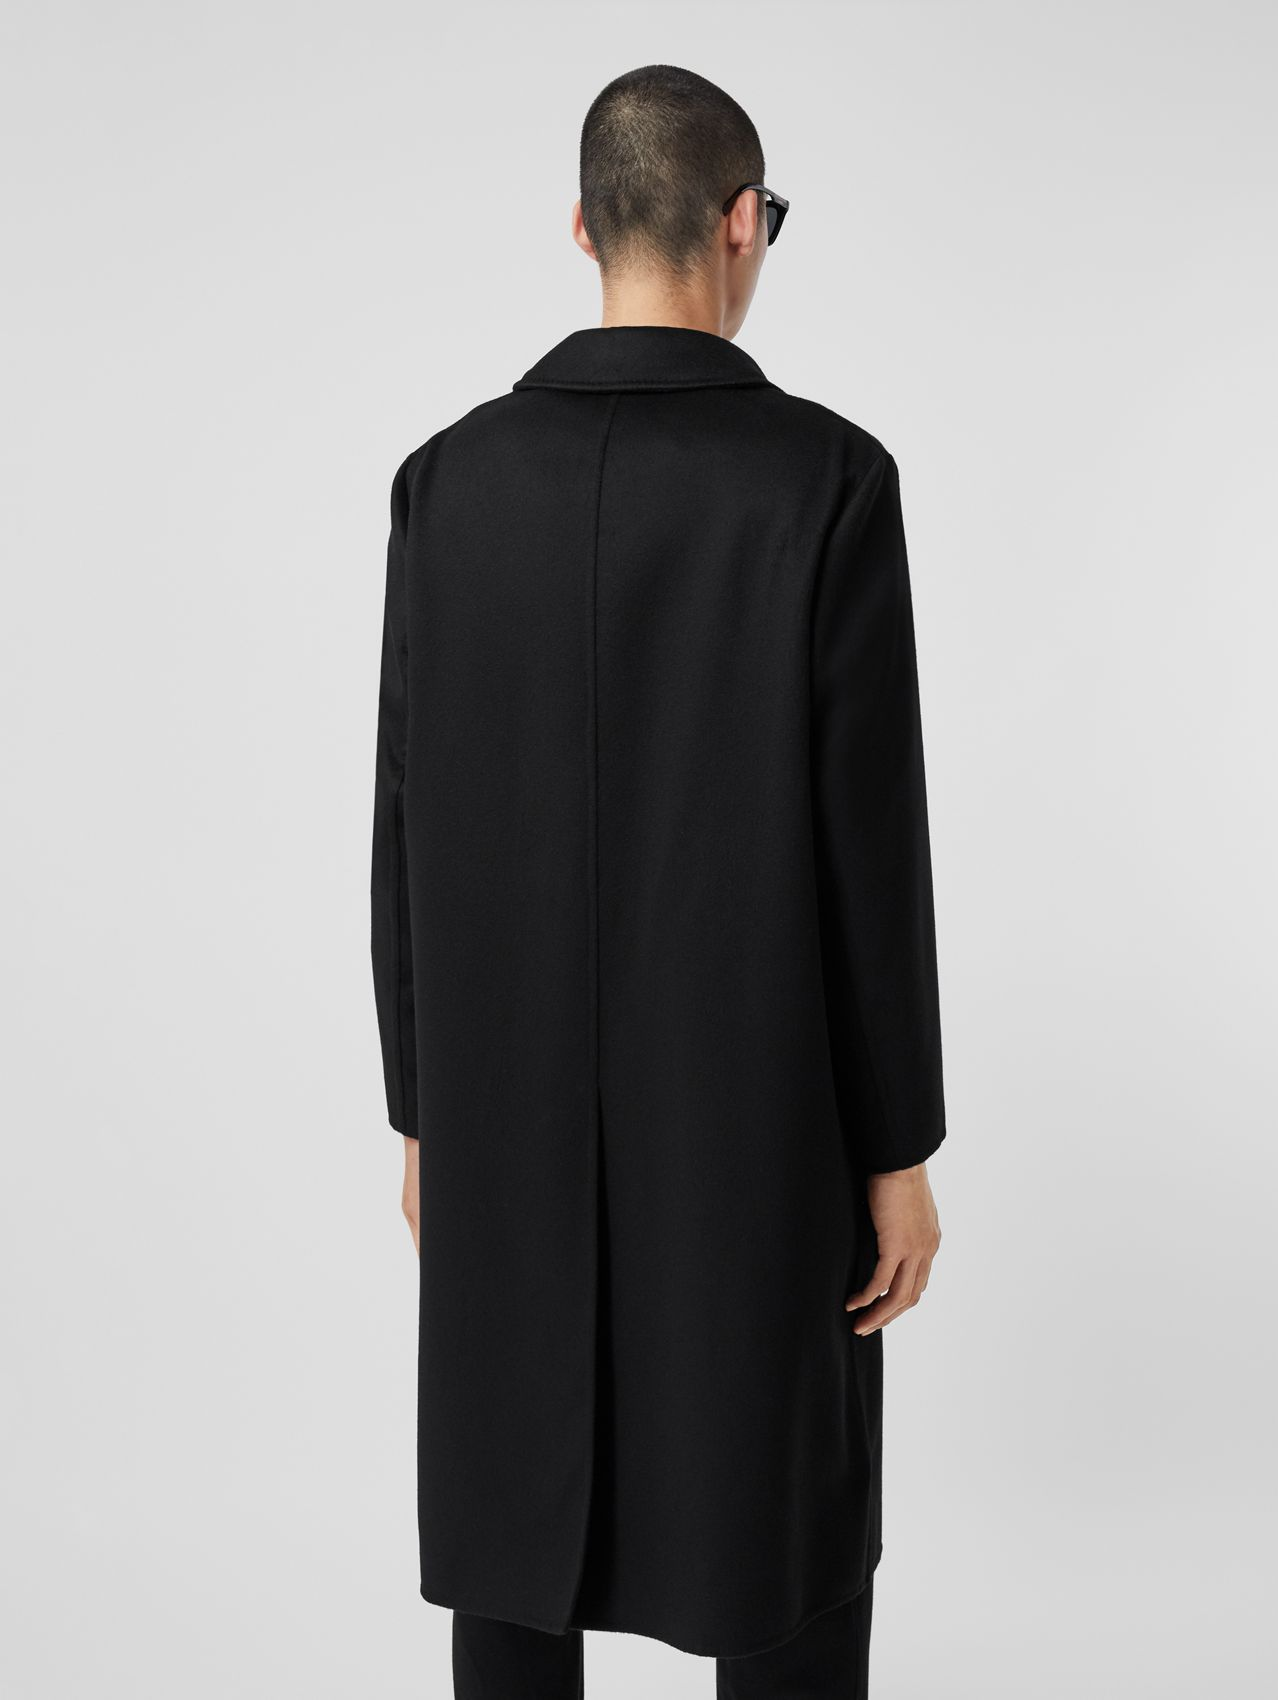 Monogram Detail Double-faced Cashmere Car Coat in Black